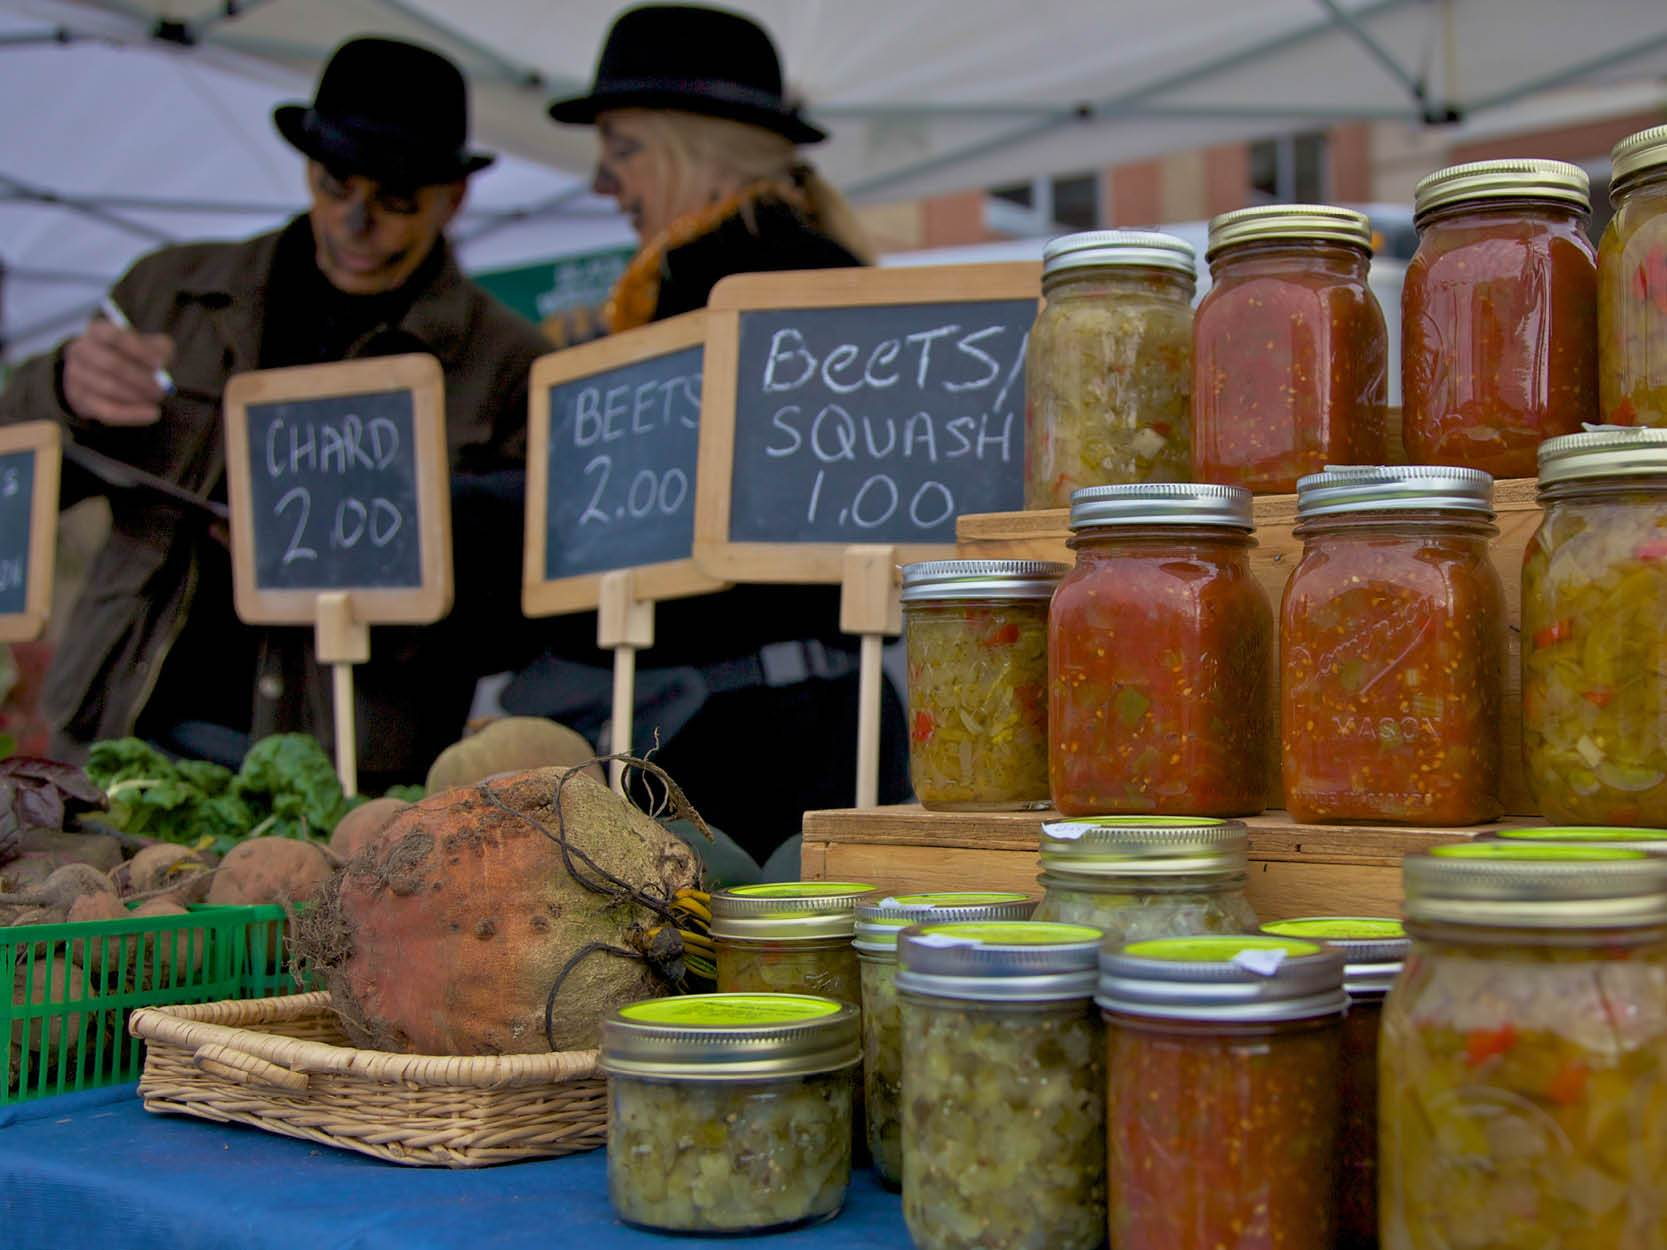 Preserves sold at a market